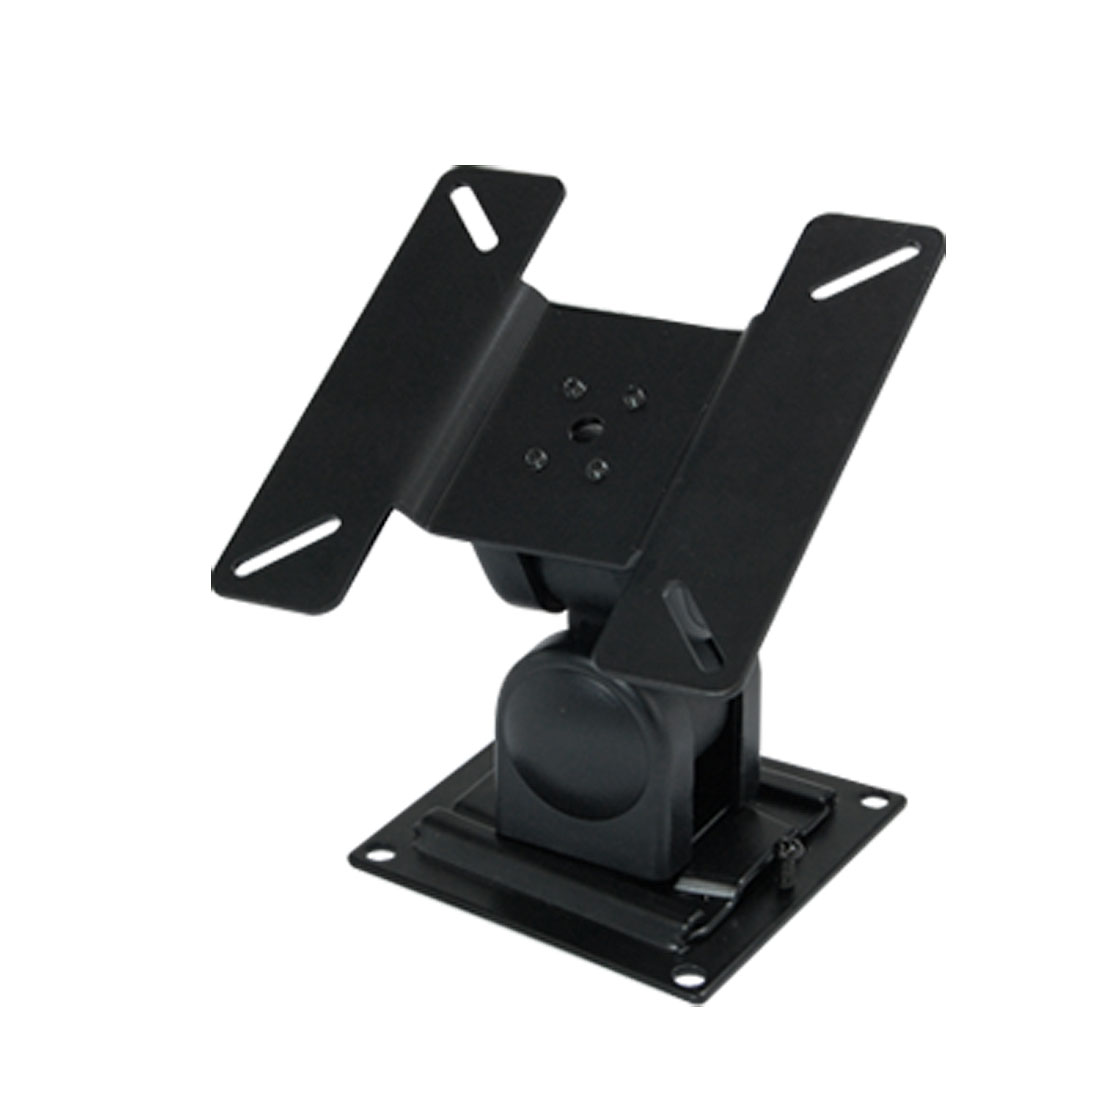 LCD LED TV Wall Mount Bracket Swivel Tilt 15 17 19 20 22 24 VESA 100